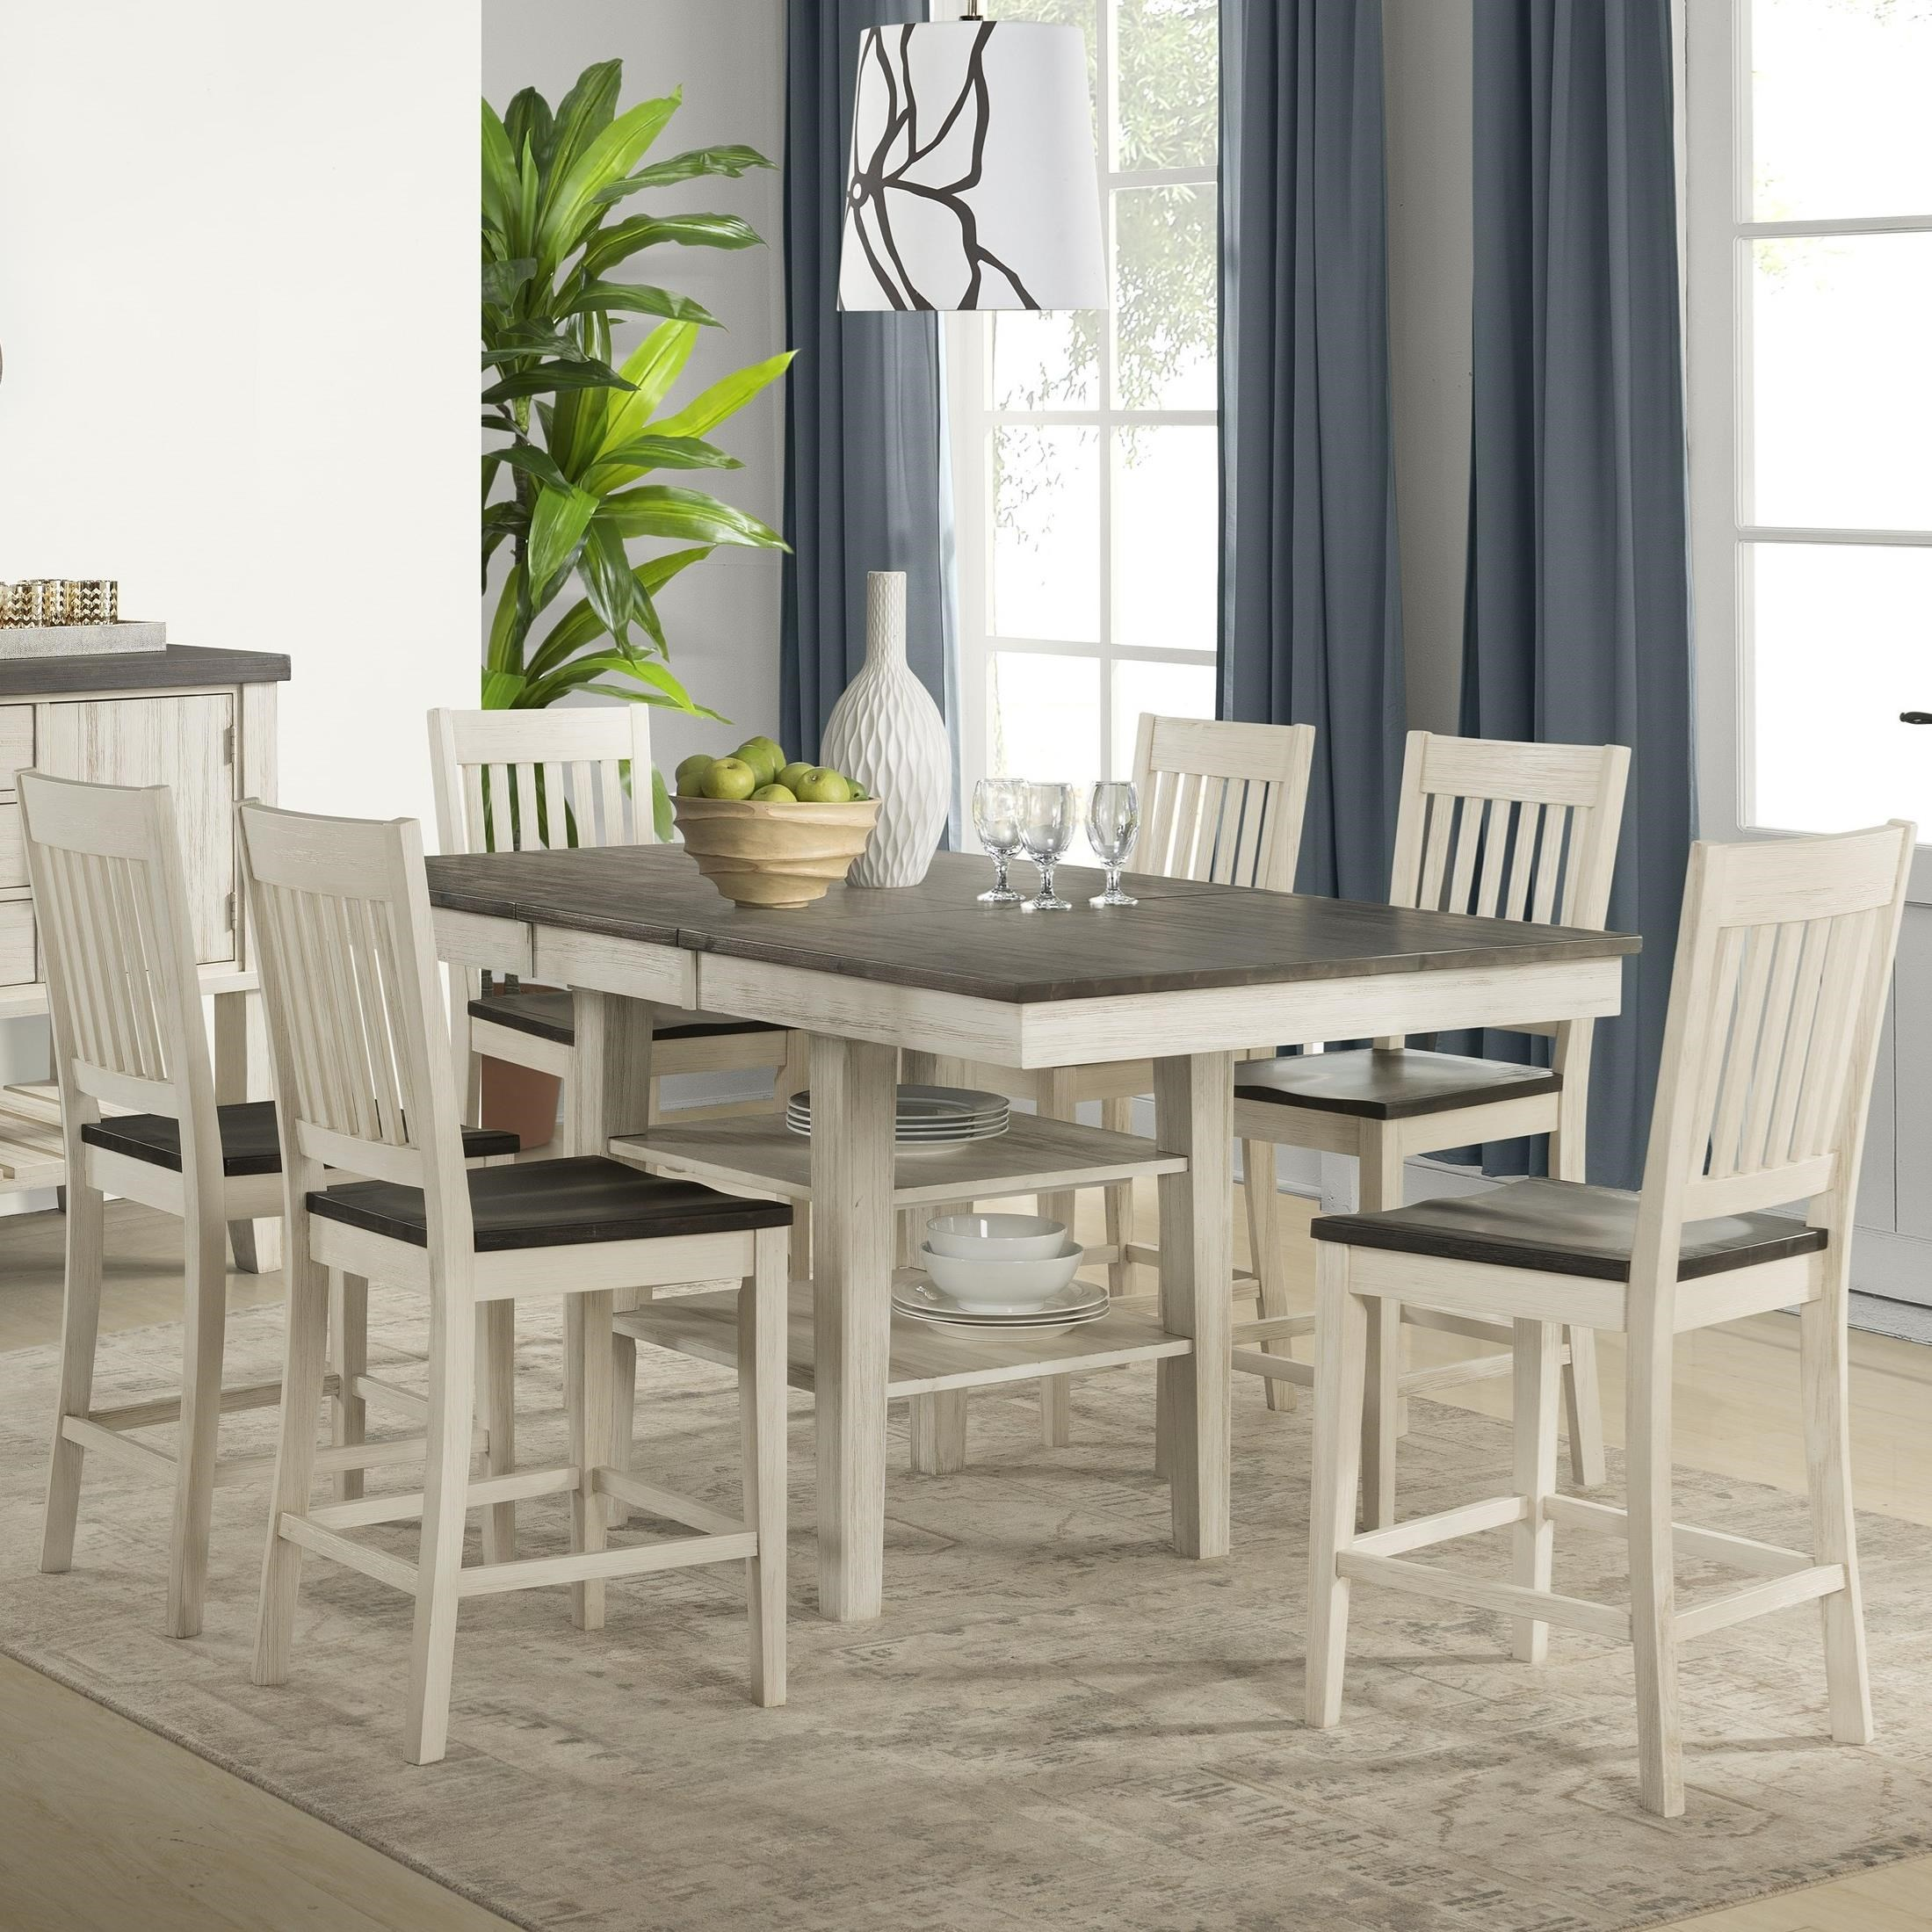 Huron Transitional Pub Table and Chair Set by AAmerica at Johnny Janosik